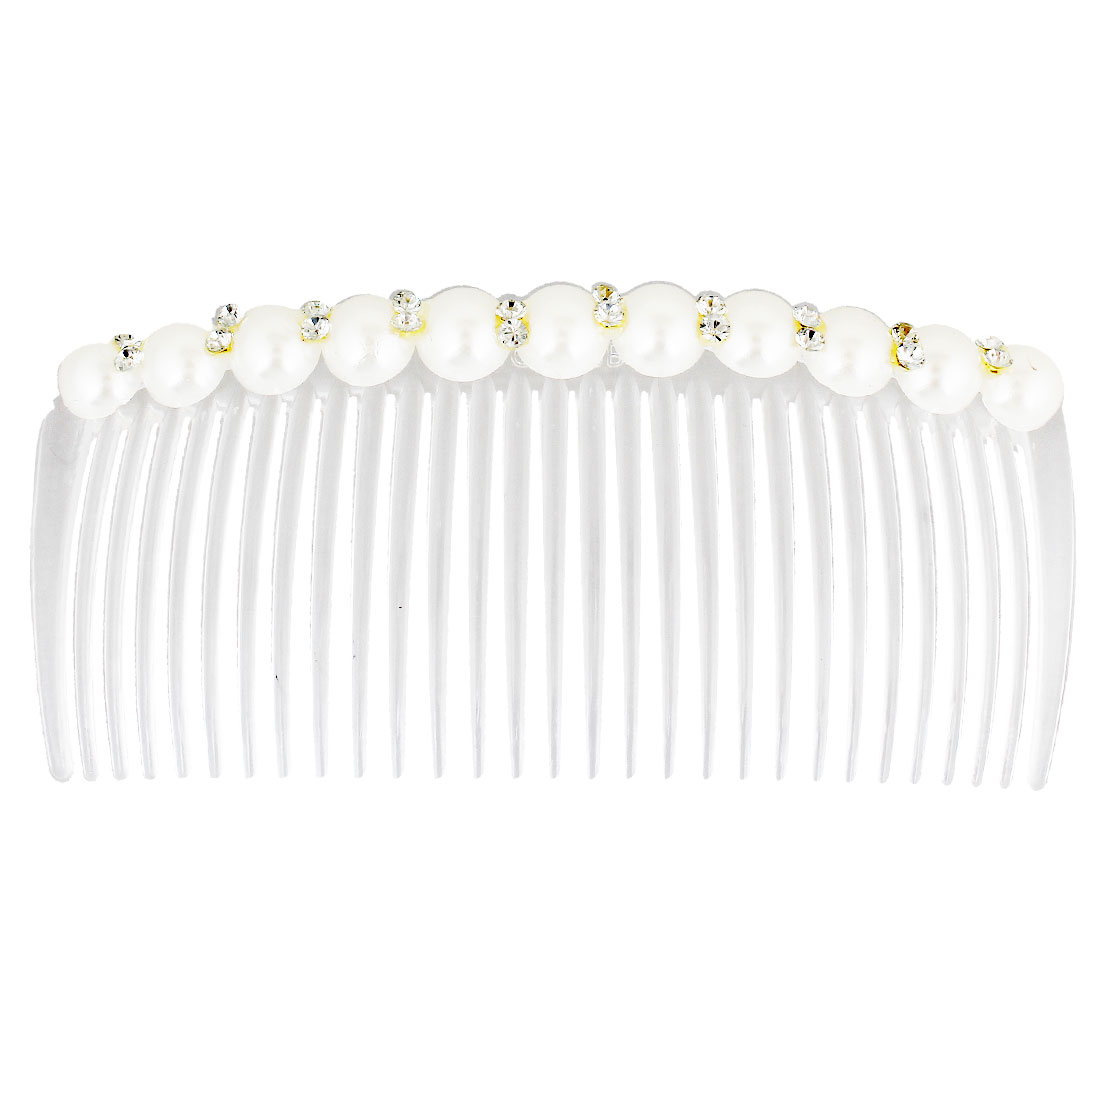 Ladies Rhinestones Inlaid Beads Ornament Narrow Teeth Hair Comb Clip White